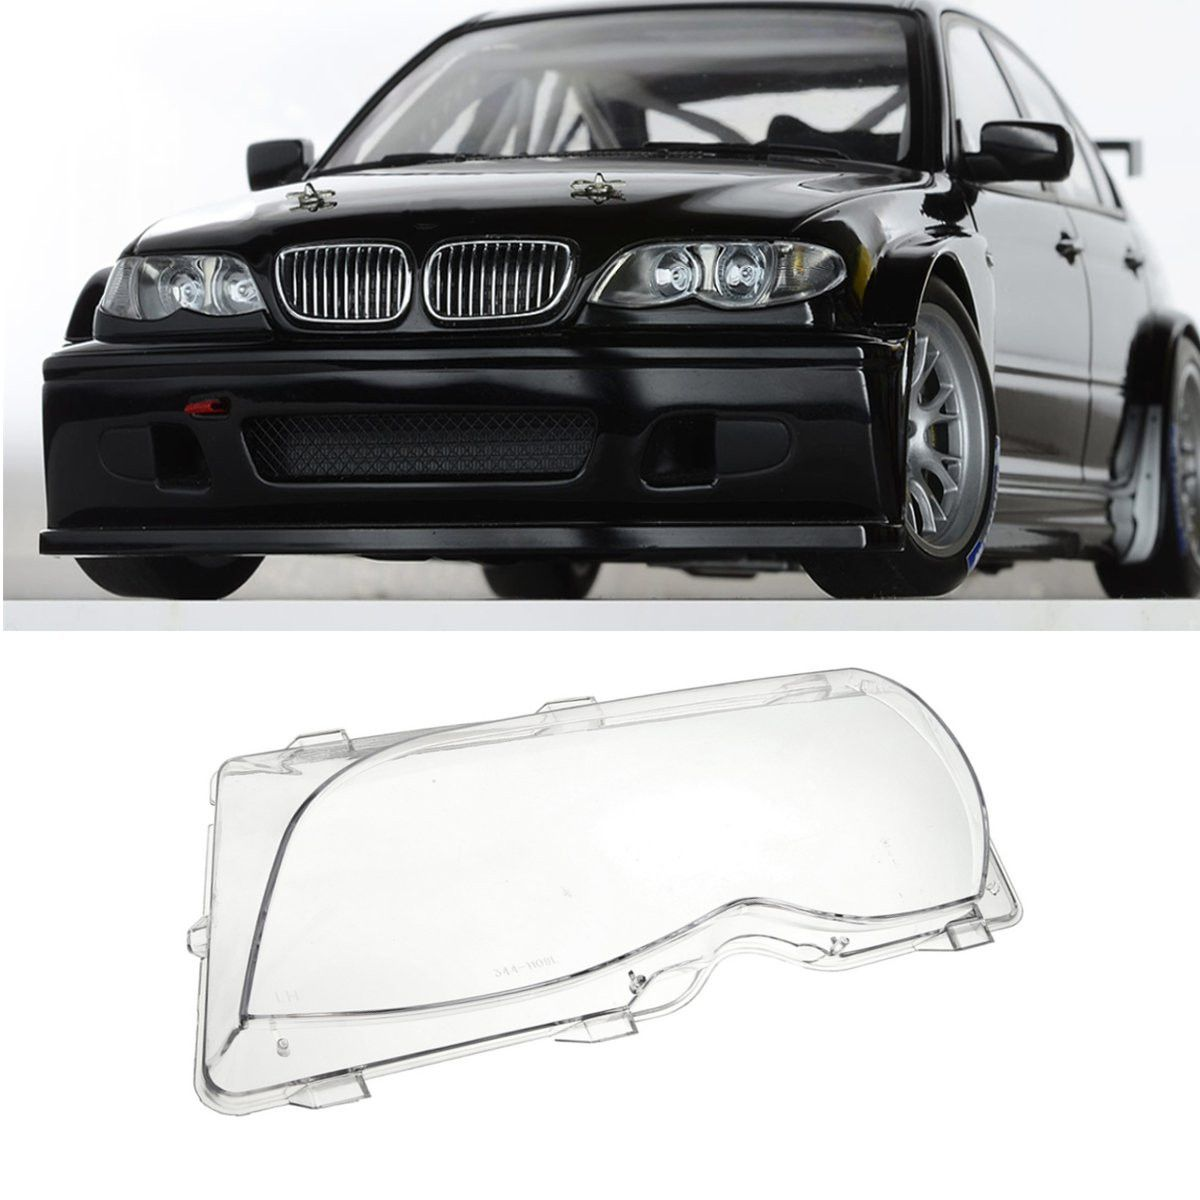 1Pcs Left/Right Driver Side Headlight Lens Plastic Shell Cover For BMW E46 3-Series 4DR 2001 2002 2003 2004 2005 63126924045